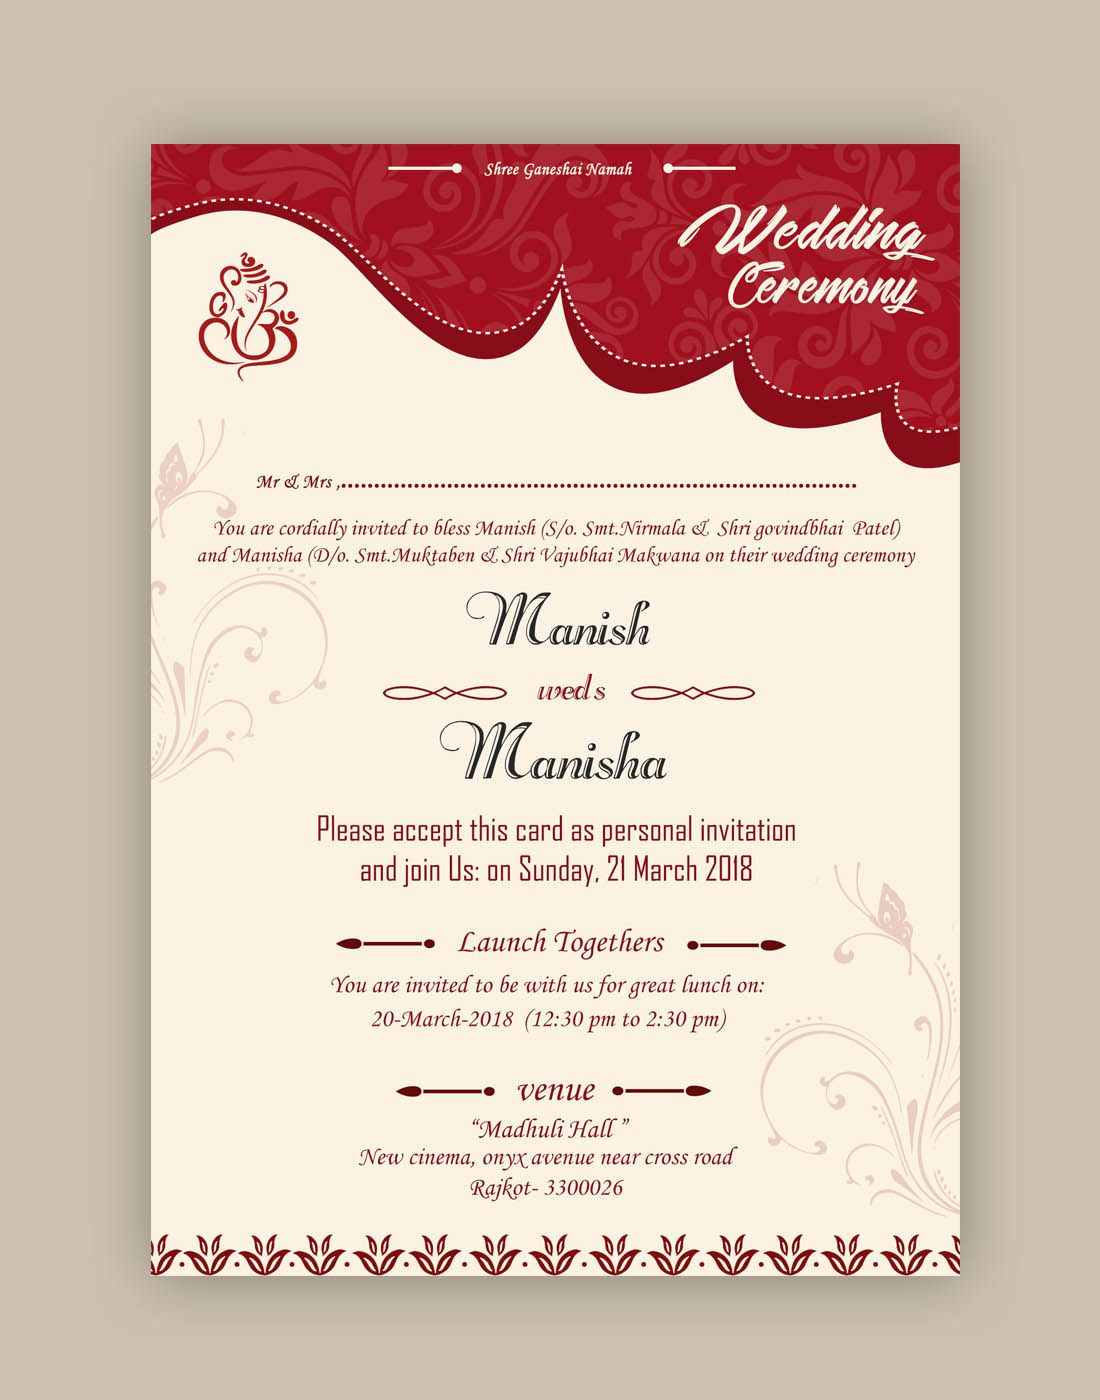 Free Wedding Card Psd Templates Marriage Invitation Card Wedding Card Design Indian Marriage Cards